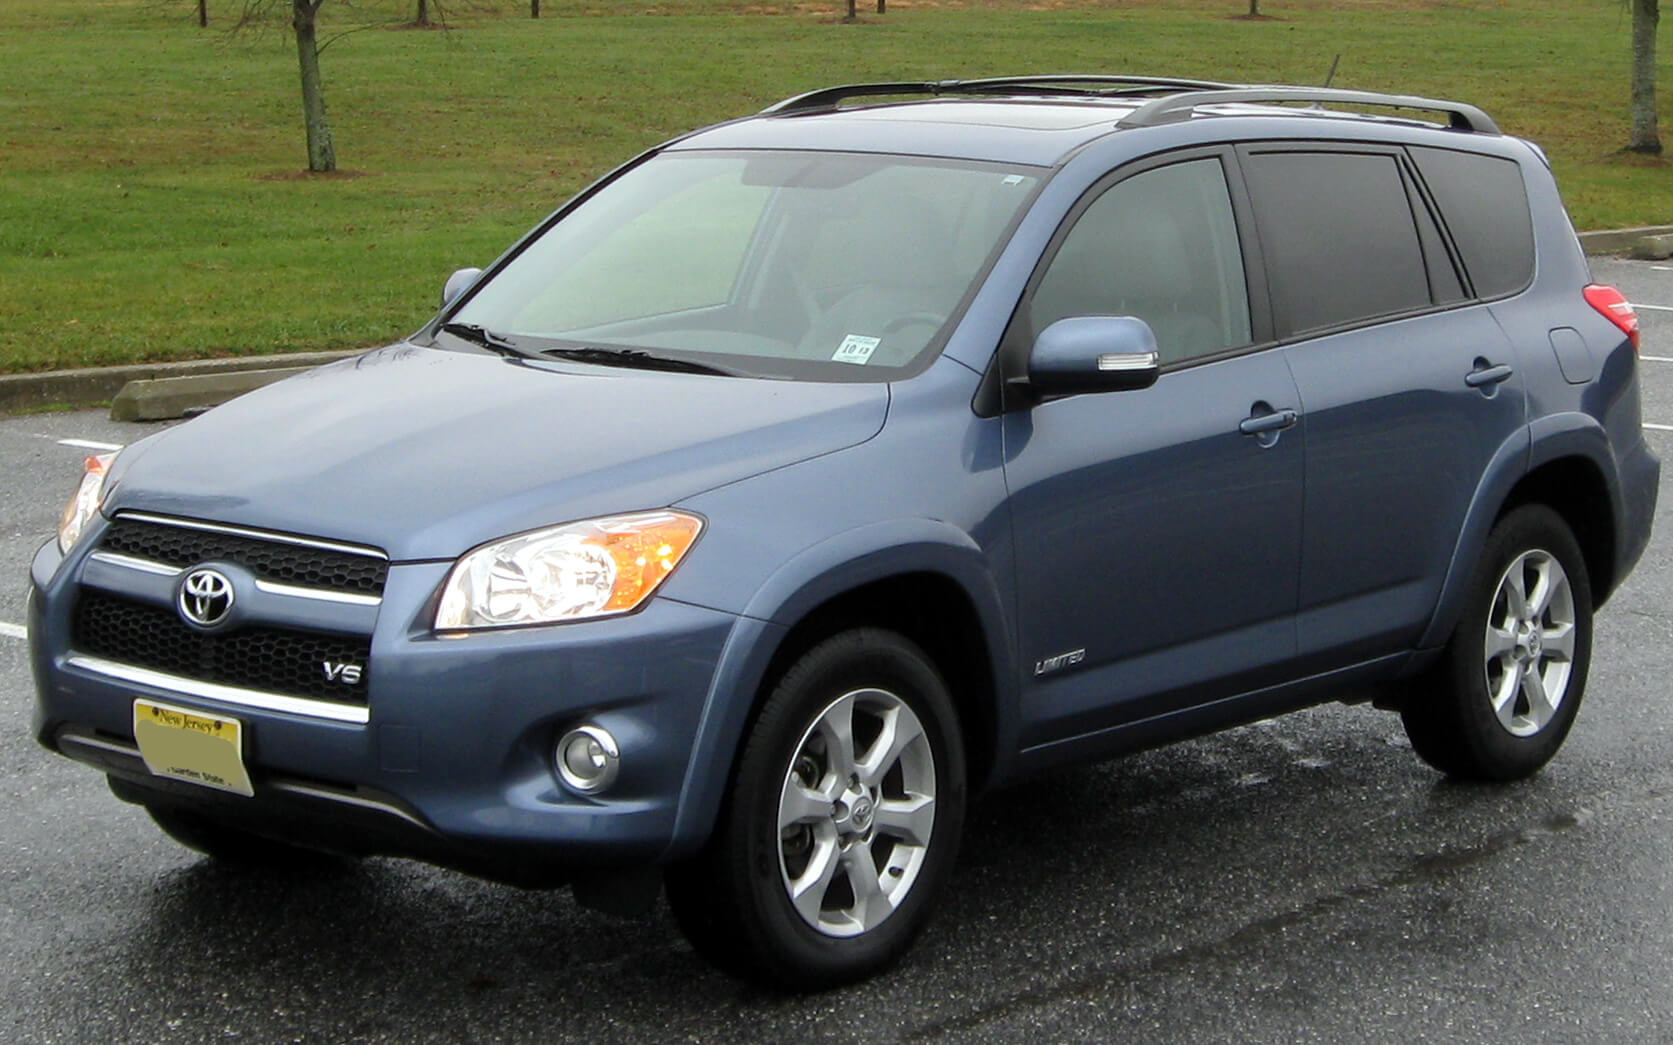 Toyota RAV4 2010 Prices in Nigeria